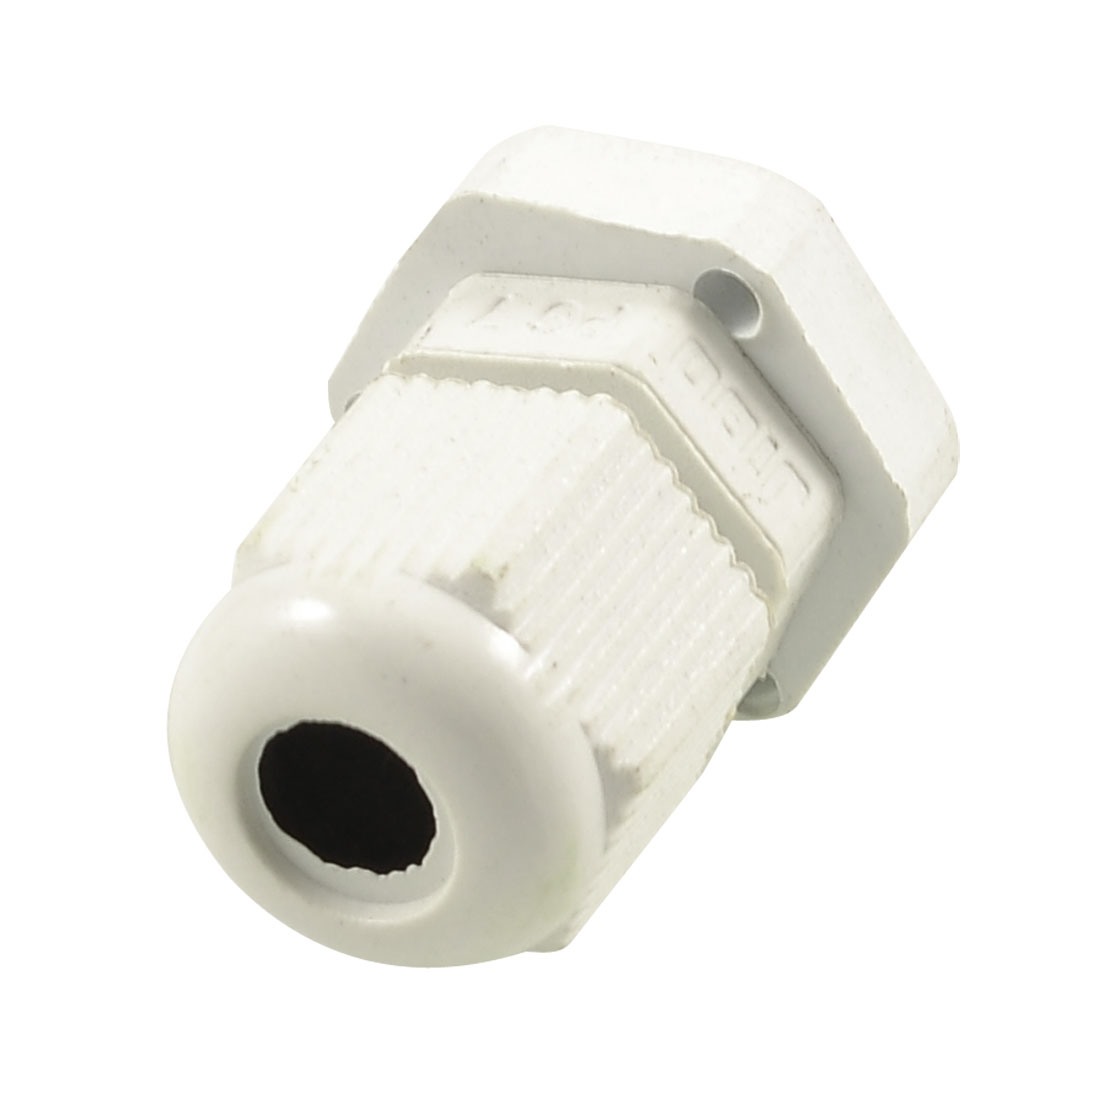 White Plastic 12.5mm Thread Outside Dia PG7 Waterproof Cable Connector